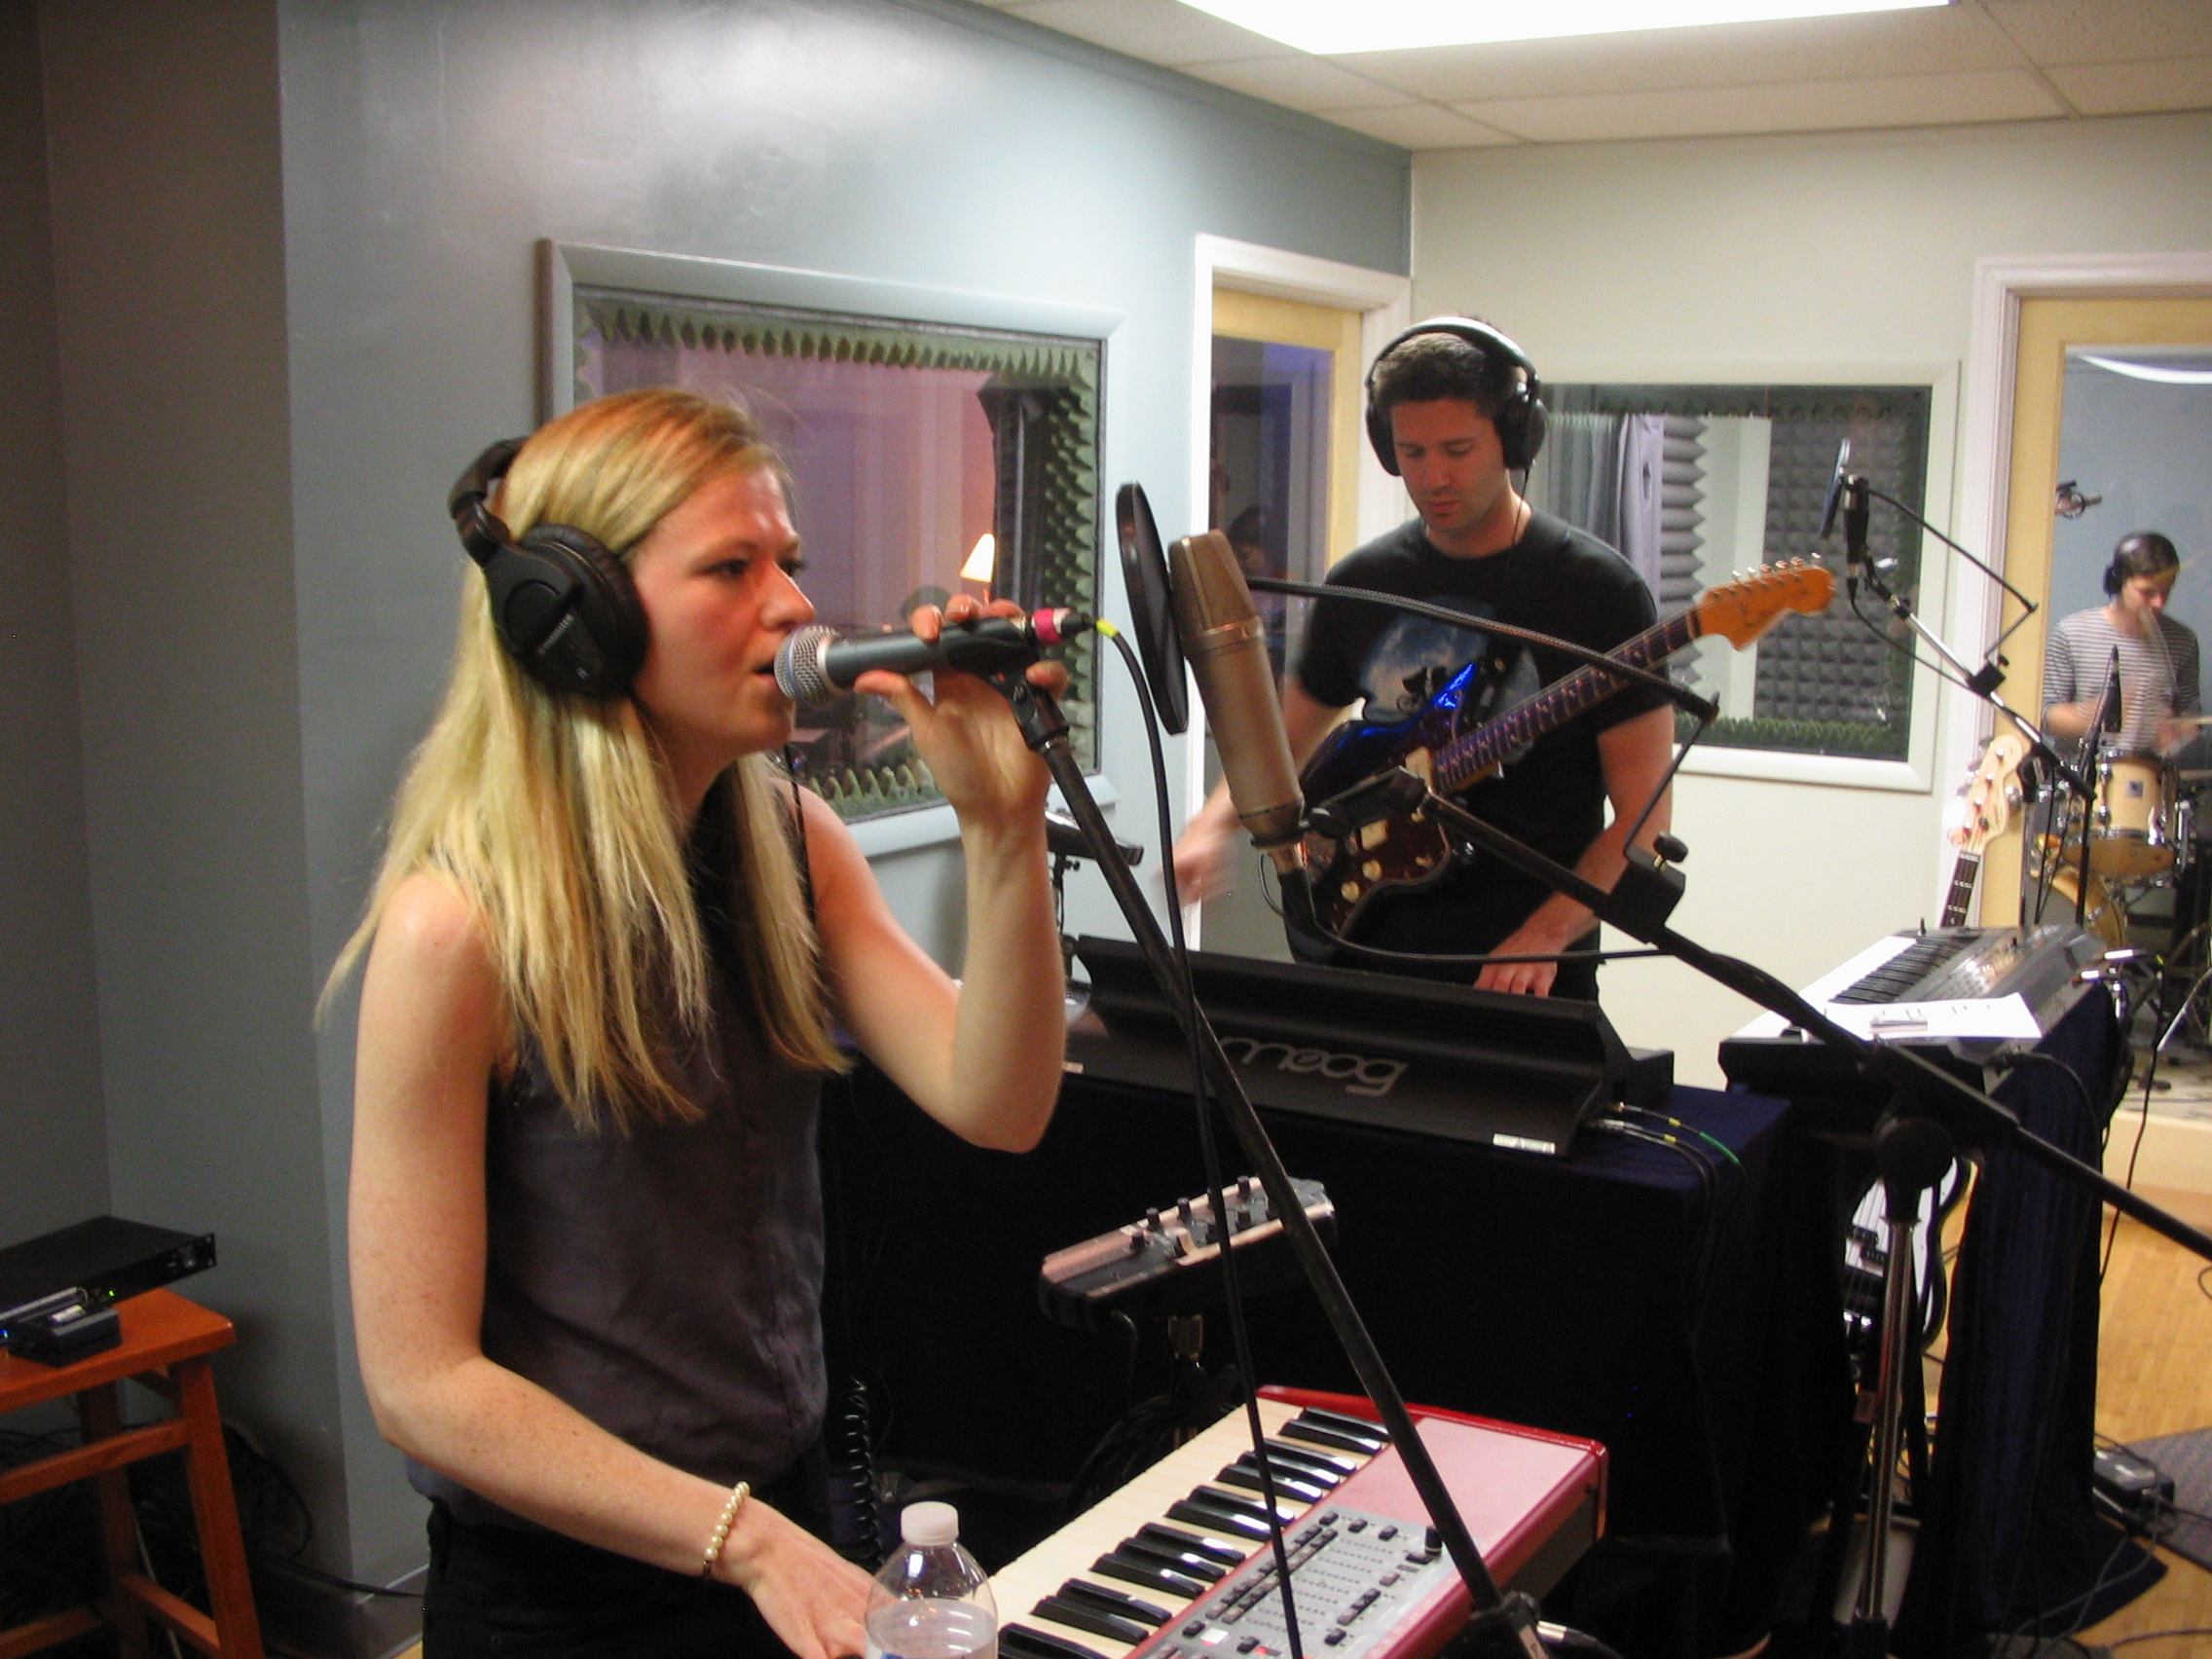 Tessa Murray & Greg Hughes of Still Corners on Echoes